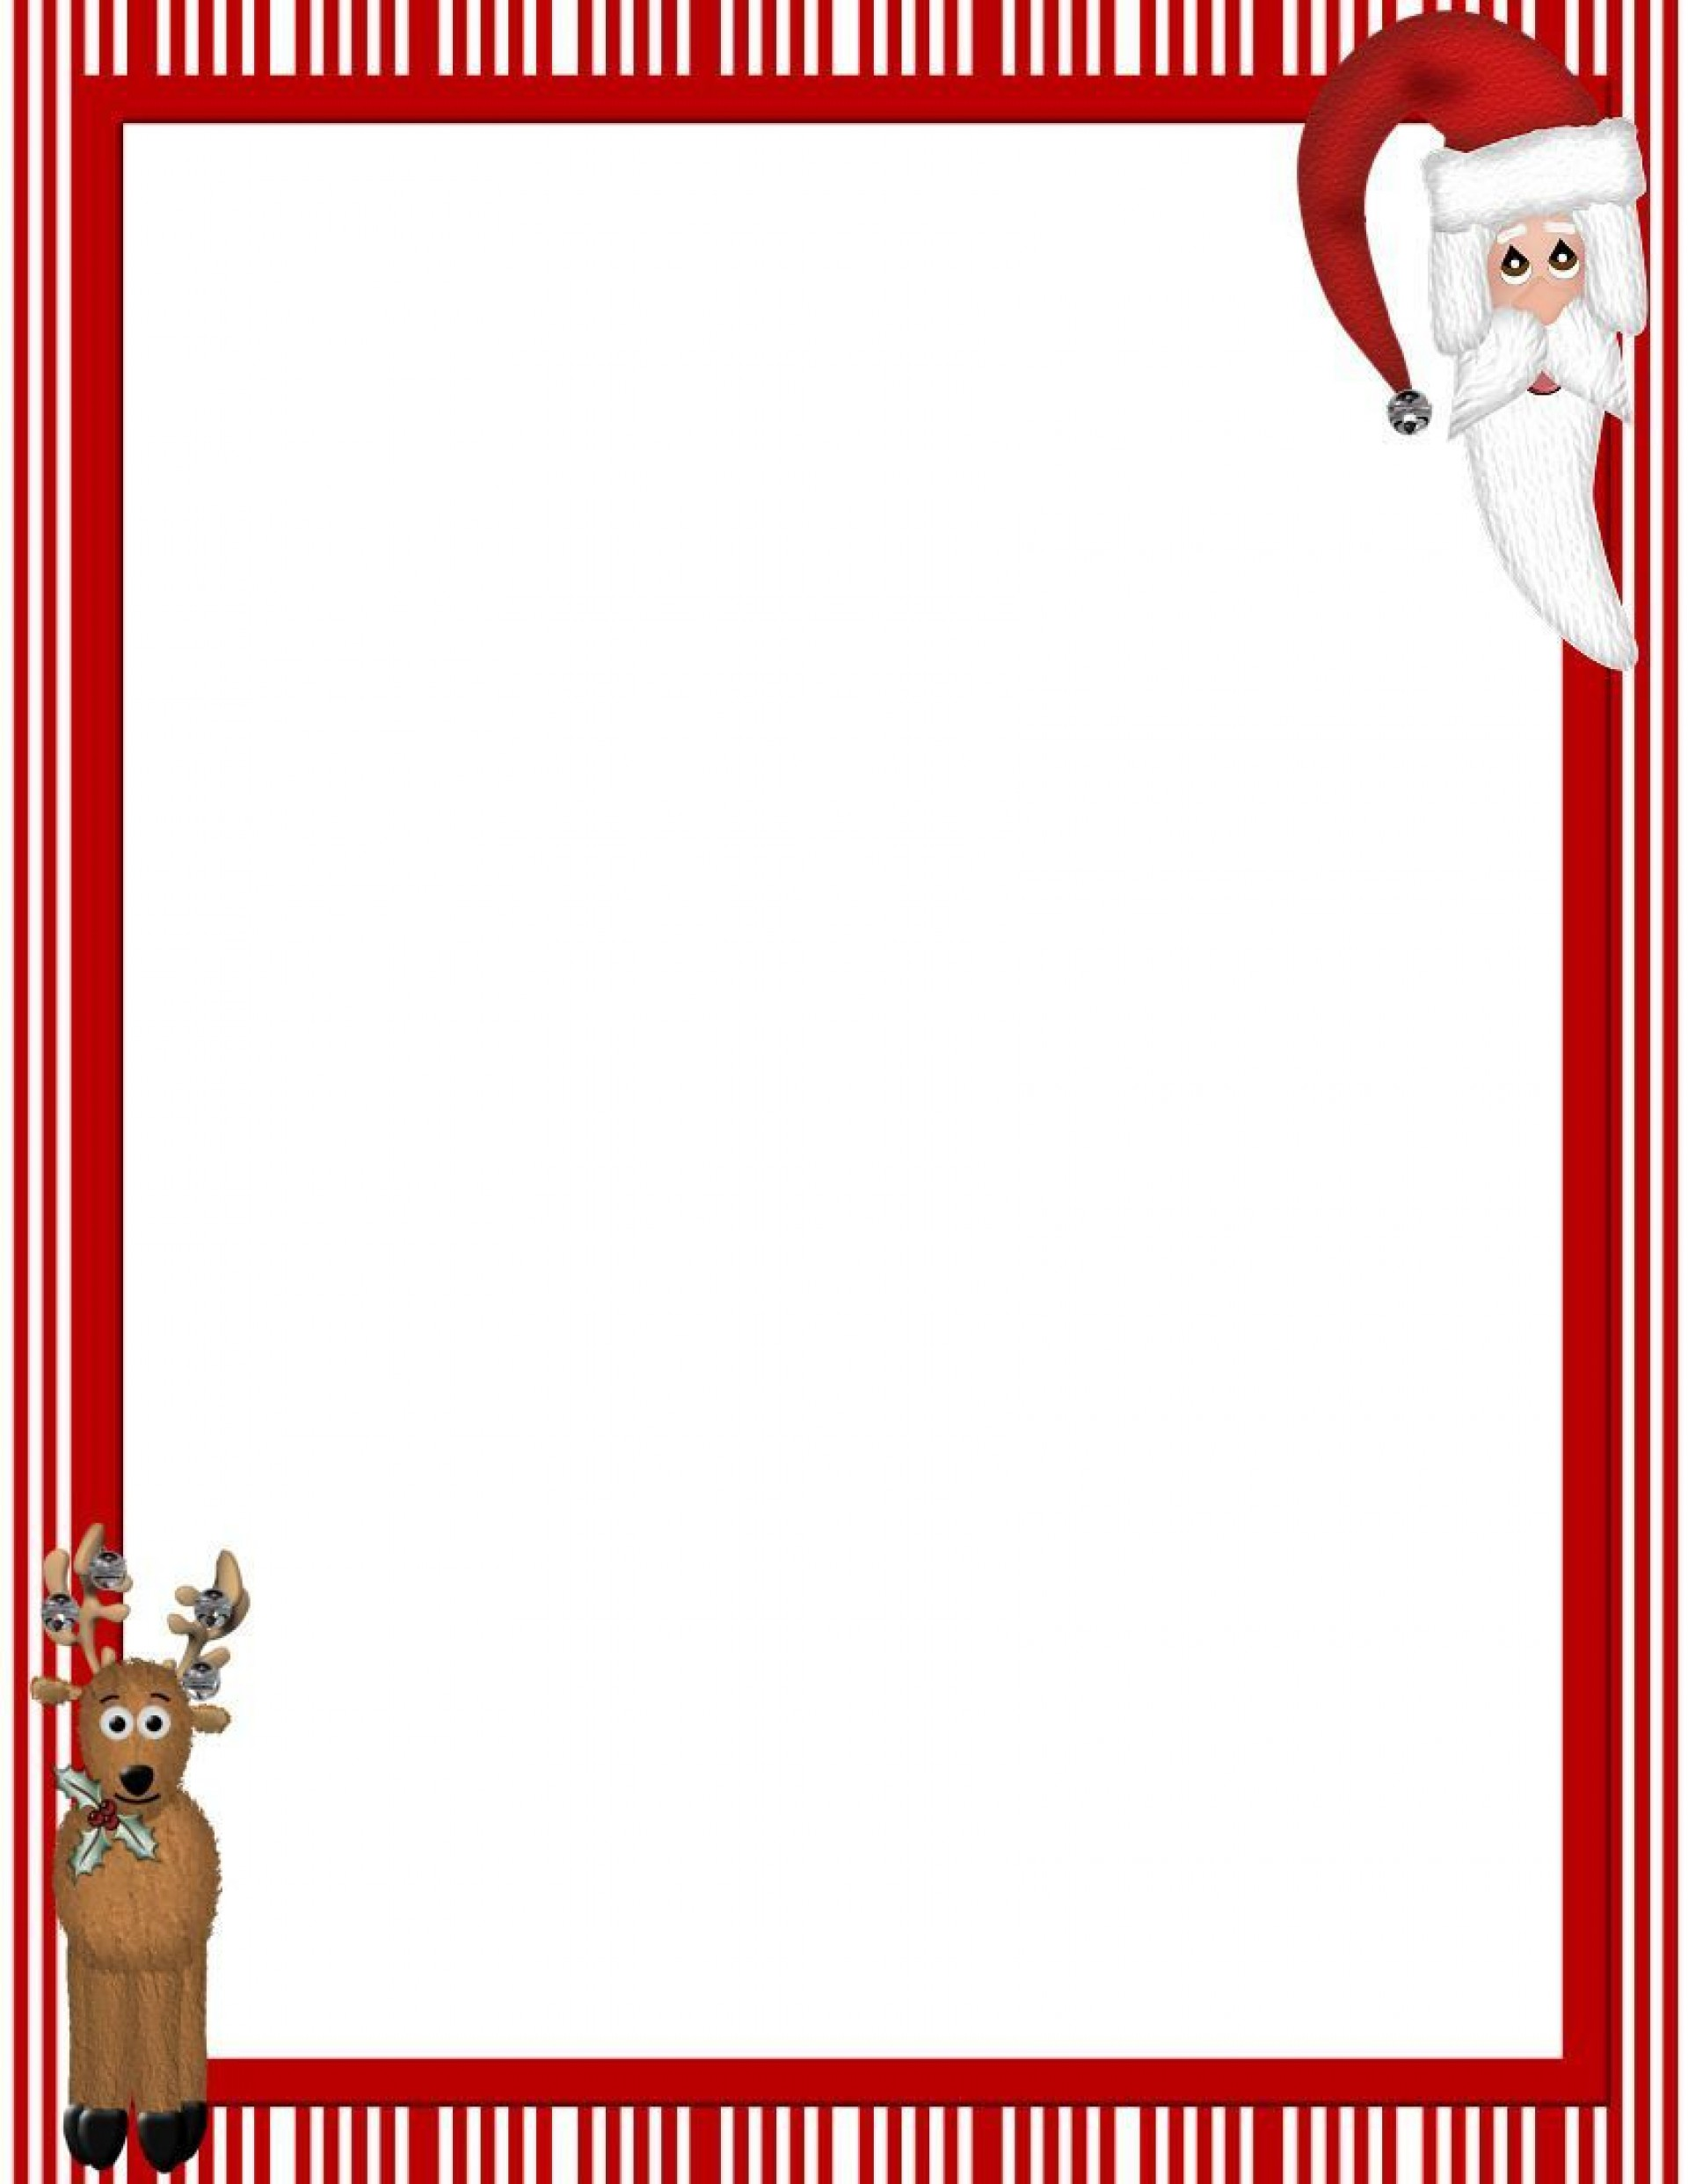 008 Phenomenal Free Christma Letter Template For Microsoft Word Concept  Downloadable Newsletter1920